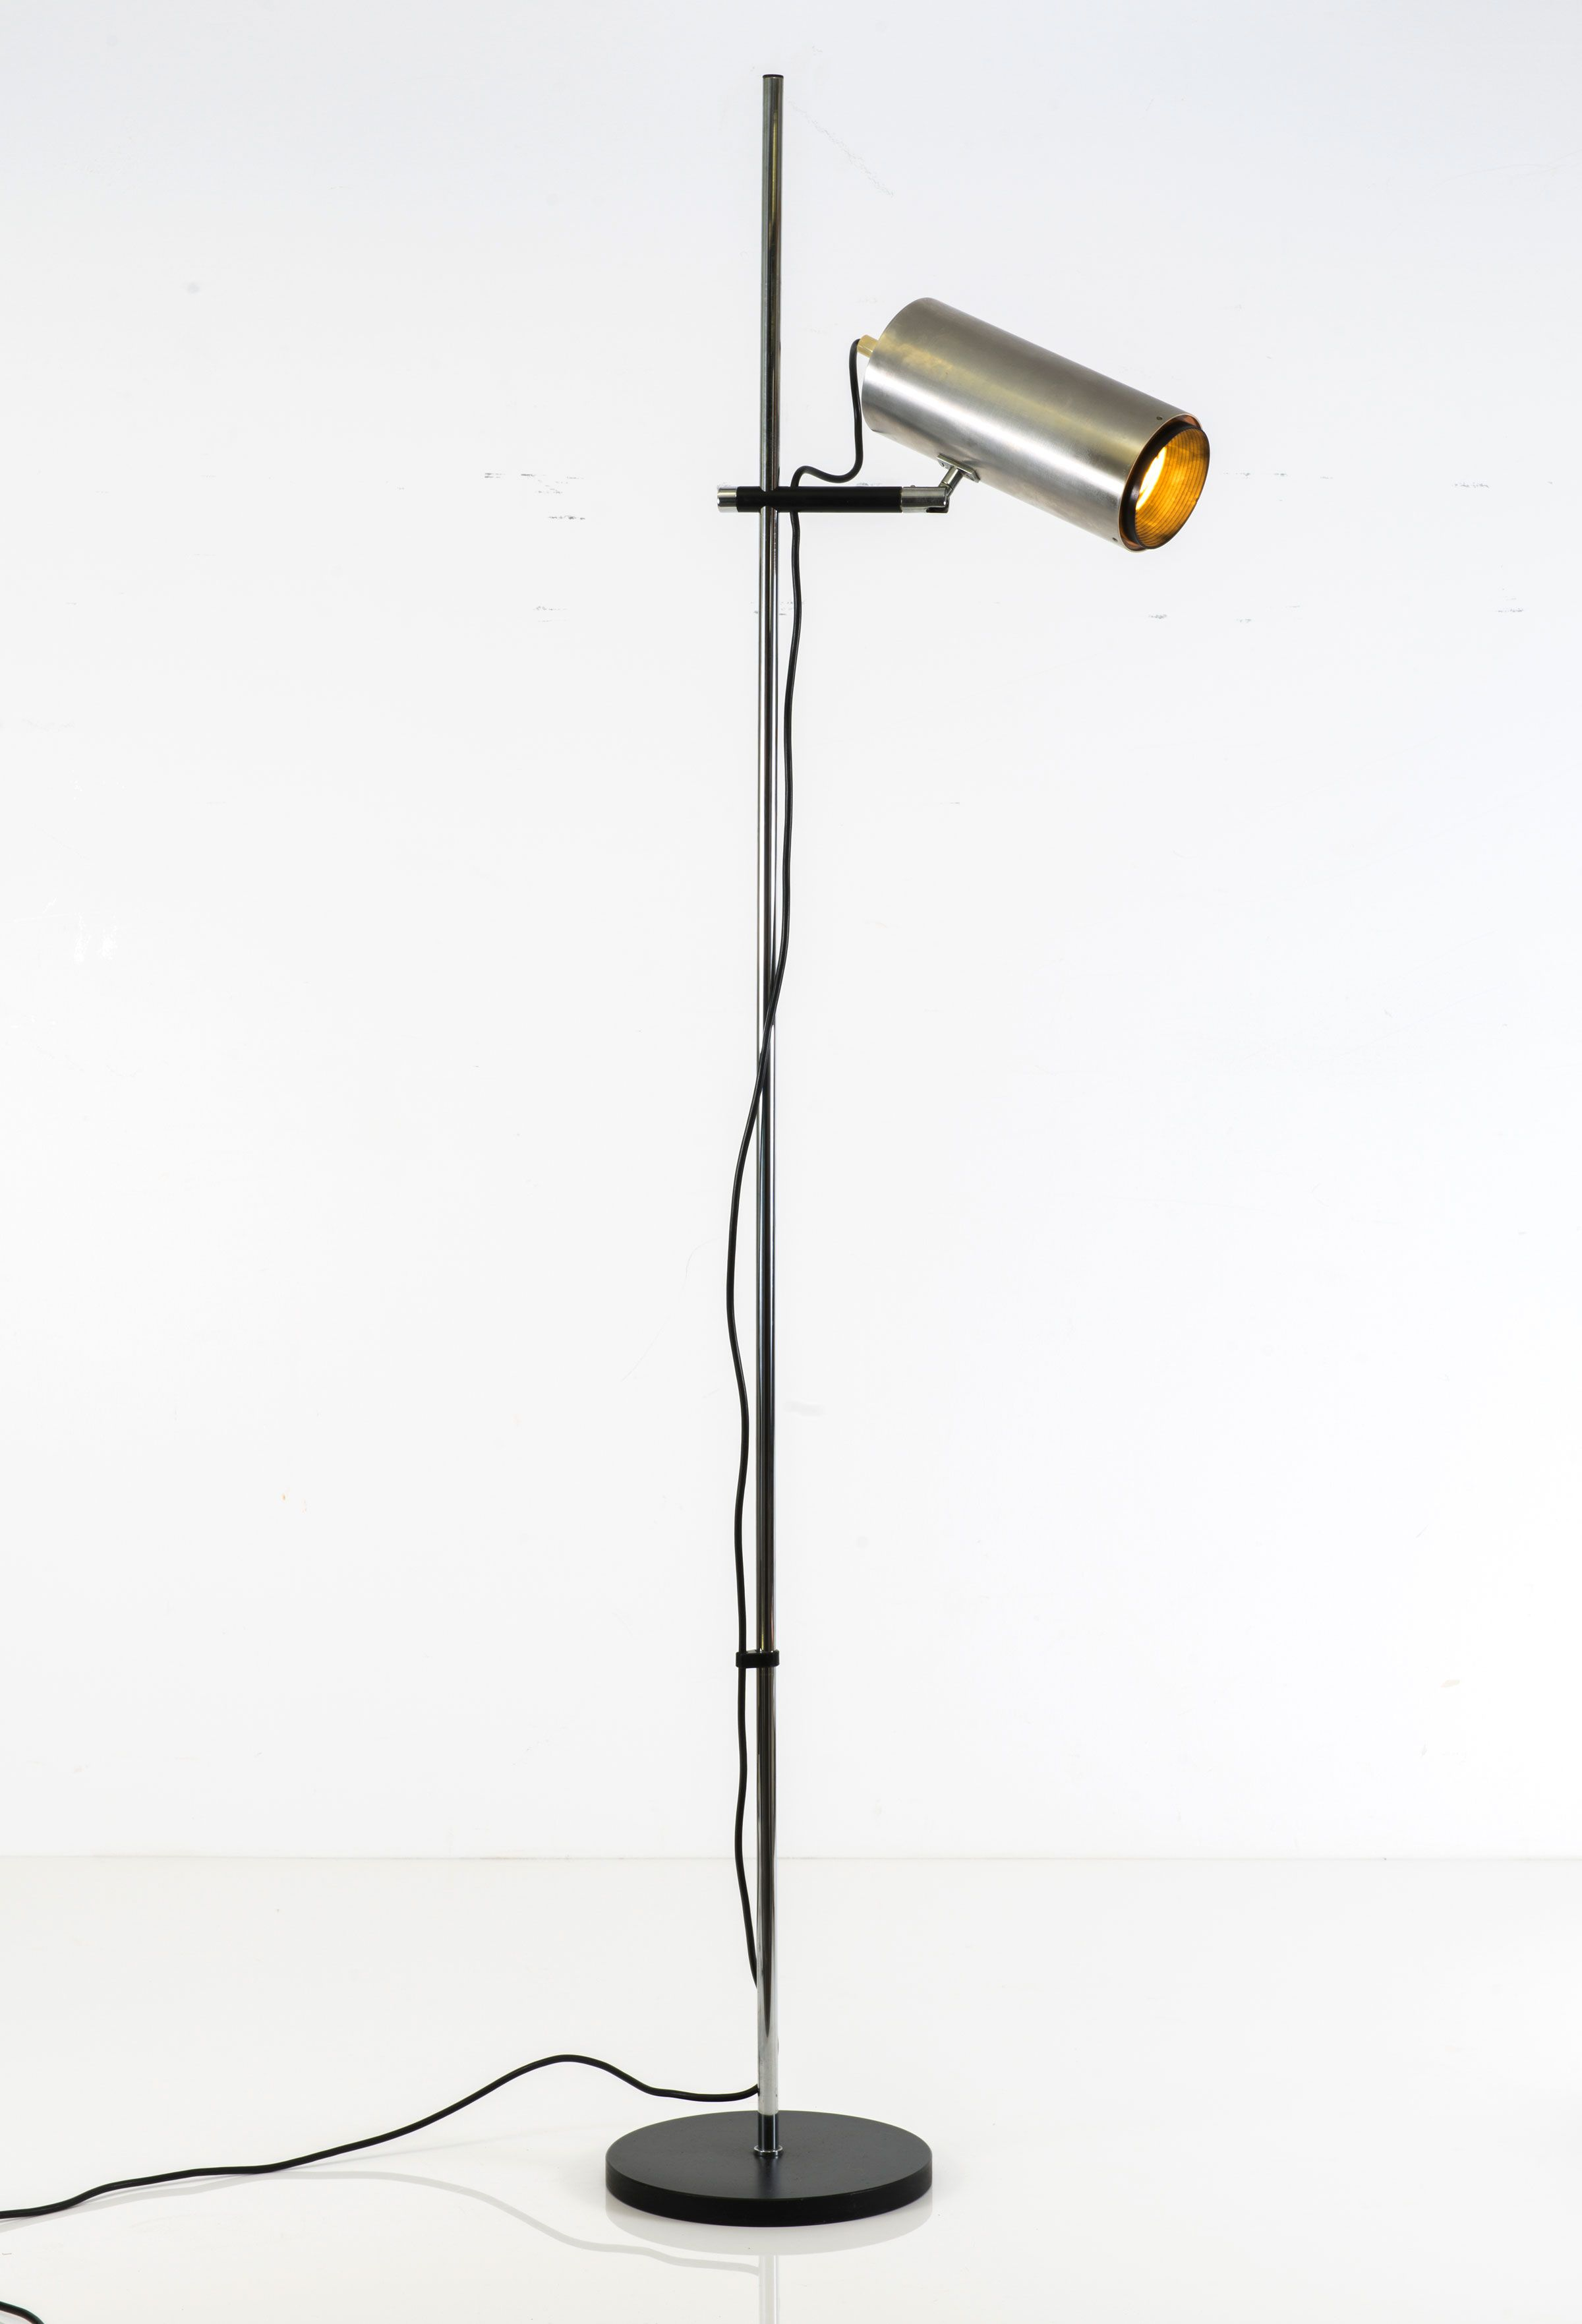 Maria pergay aluminum chromed and enameled steel floor lamp c1968 maria pergay aluminum chromed and enameled steel floor lamp c1968 aloadofball Image collections